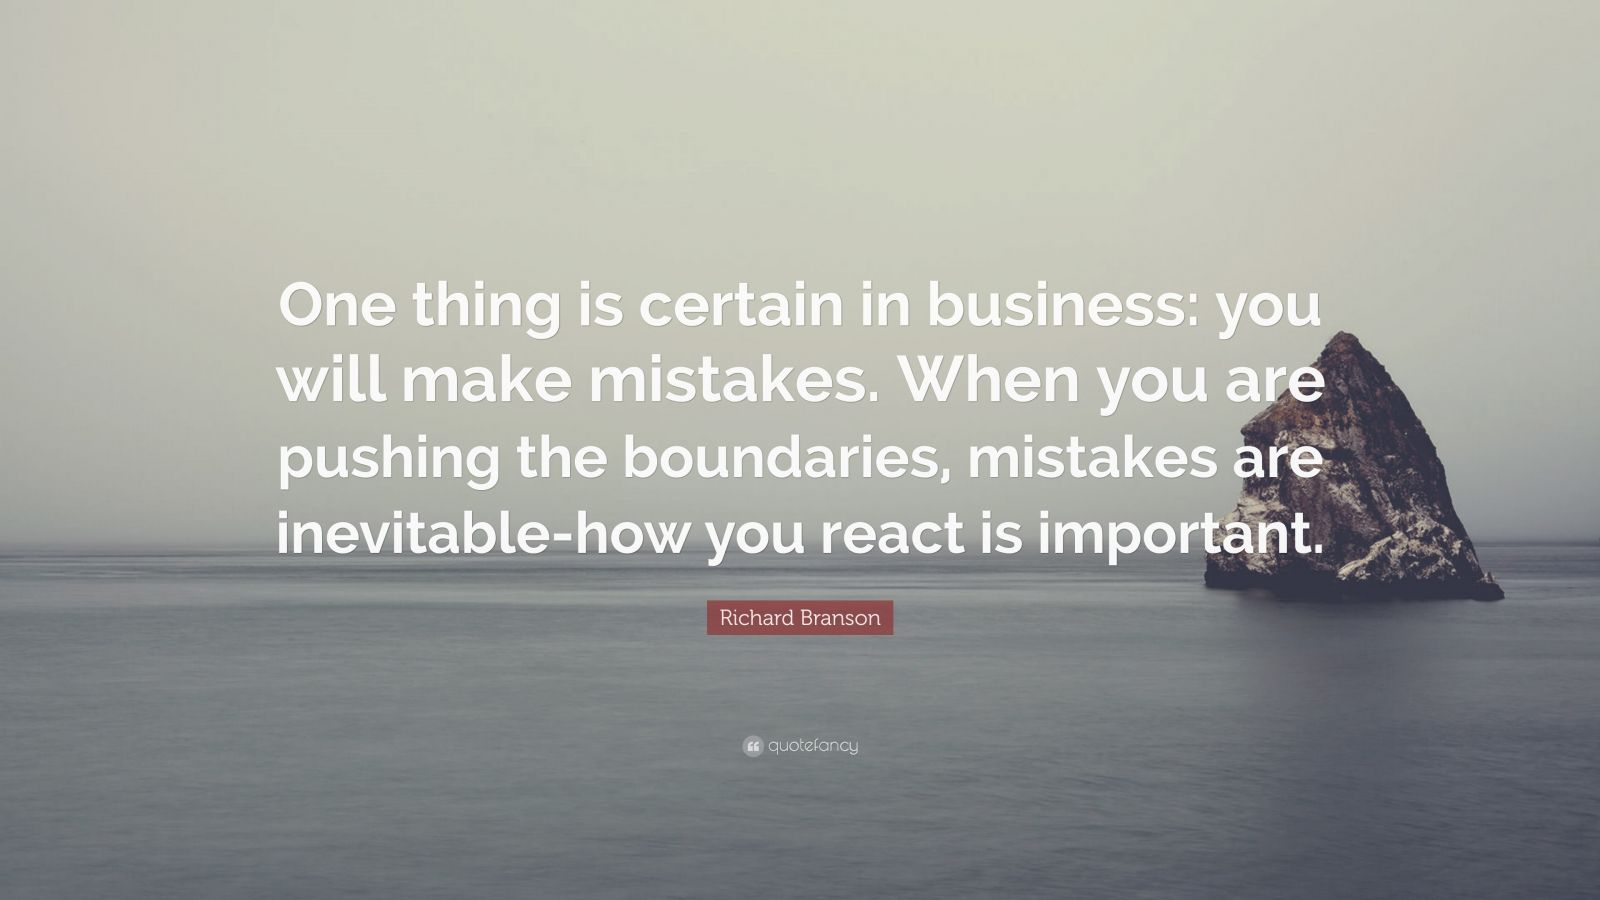 """Richard Branson Quote: """"One thing is certain in business: you will make mistakes. When you are pushing the boundaries, mistakes are inevitable-how you react is important."""""""